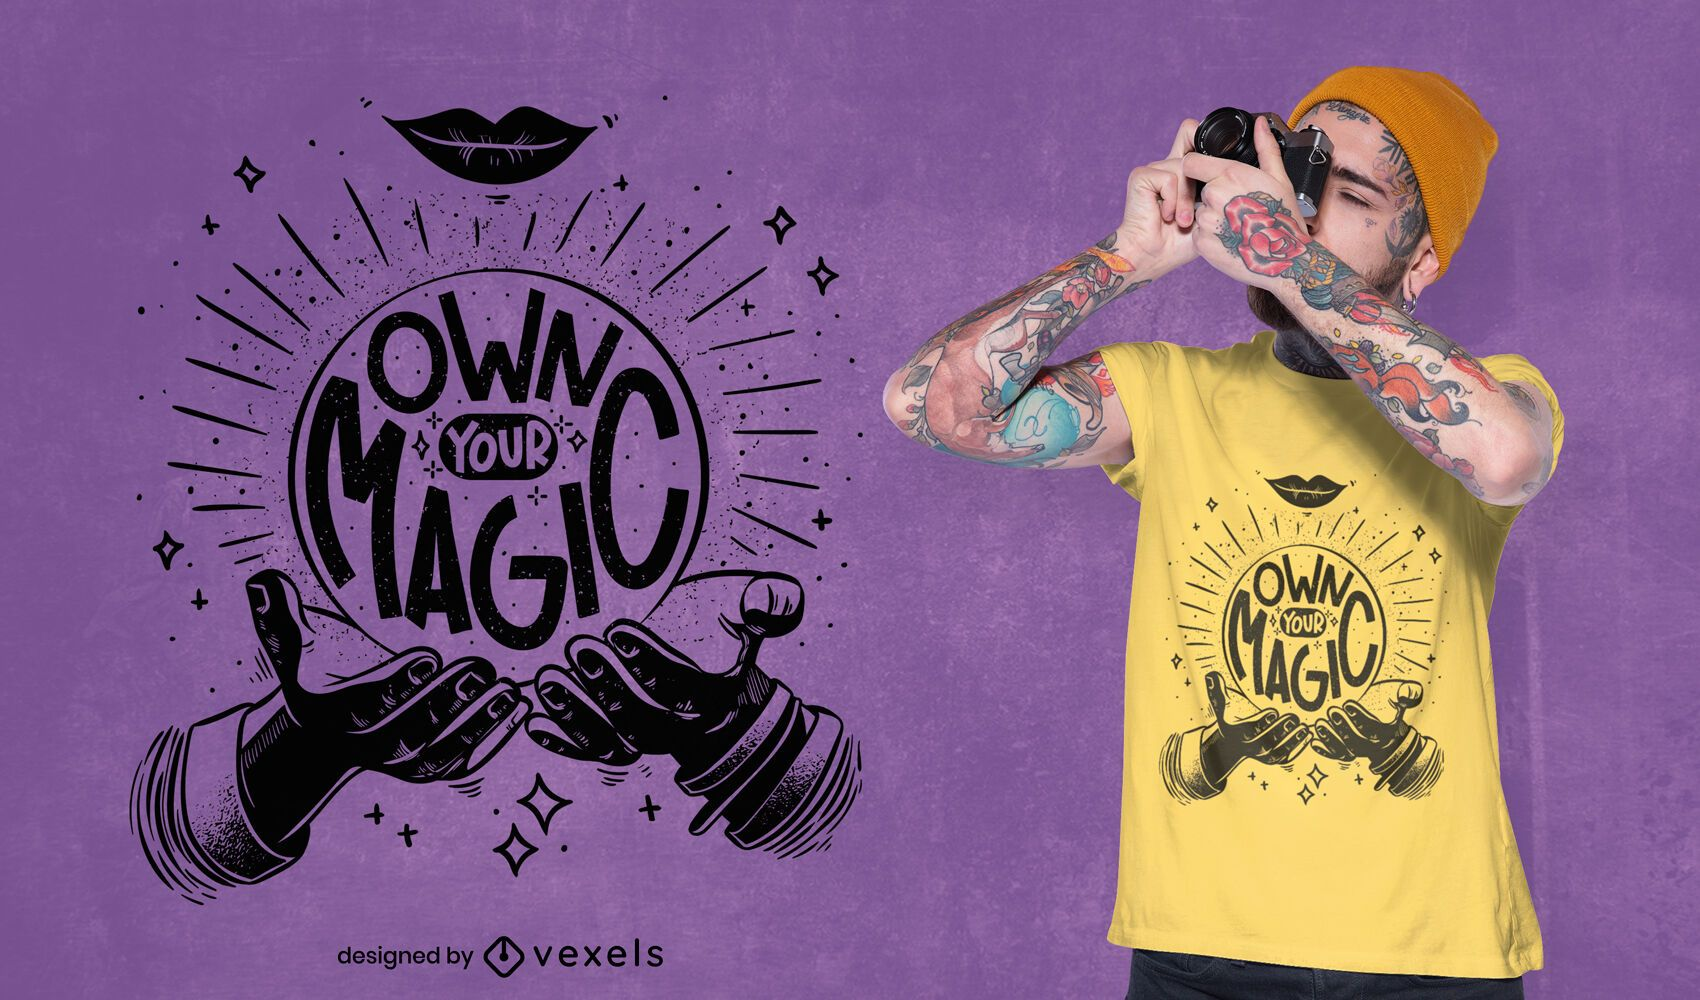 Own your magic quote t-shirt design